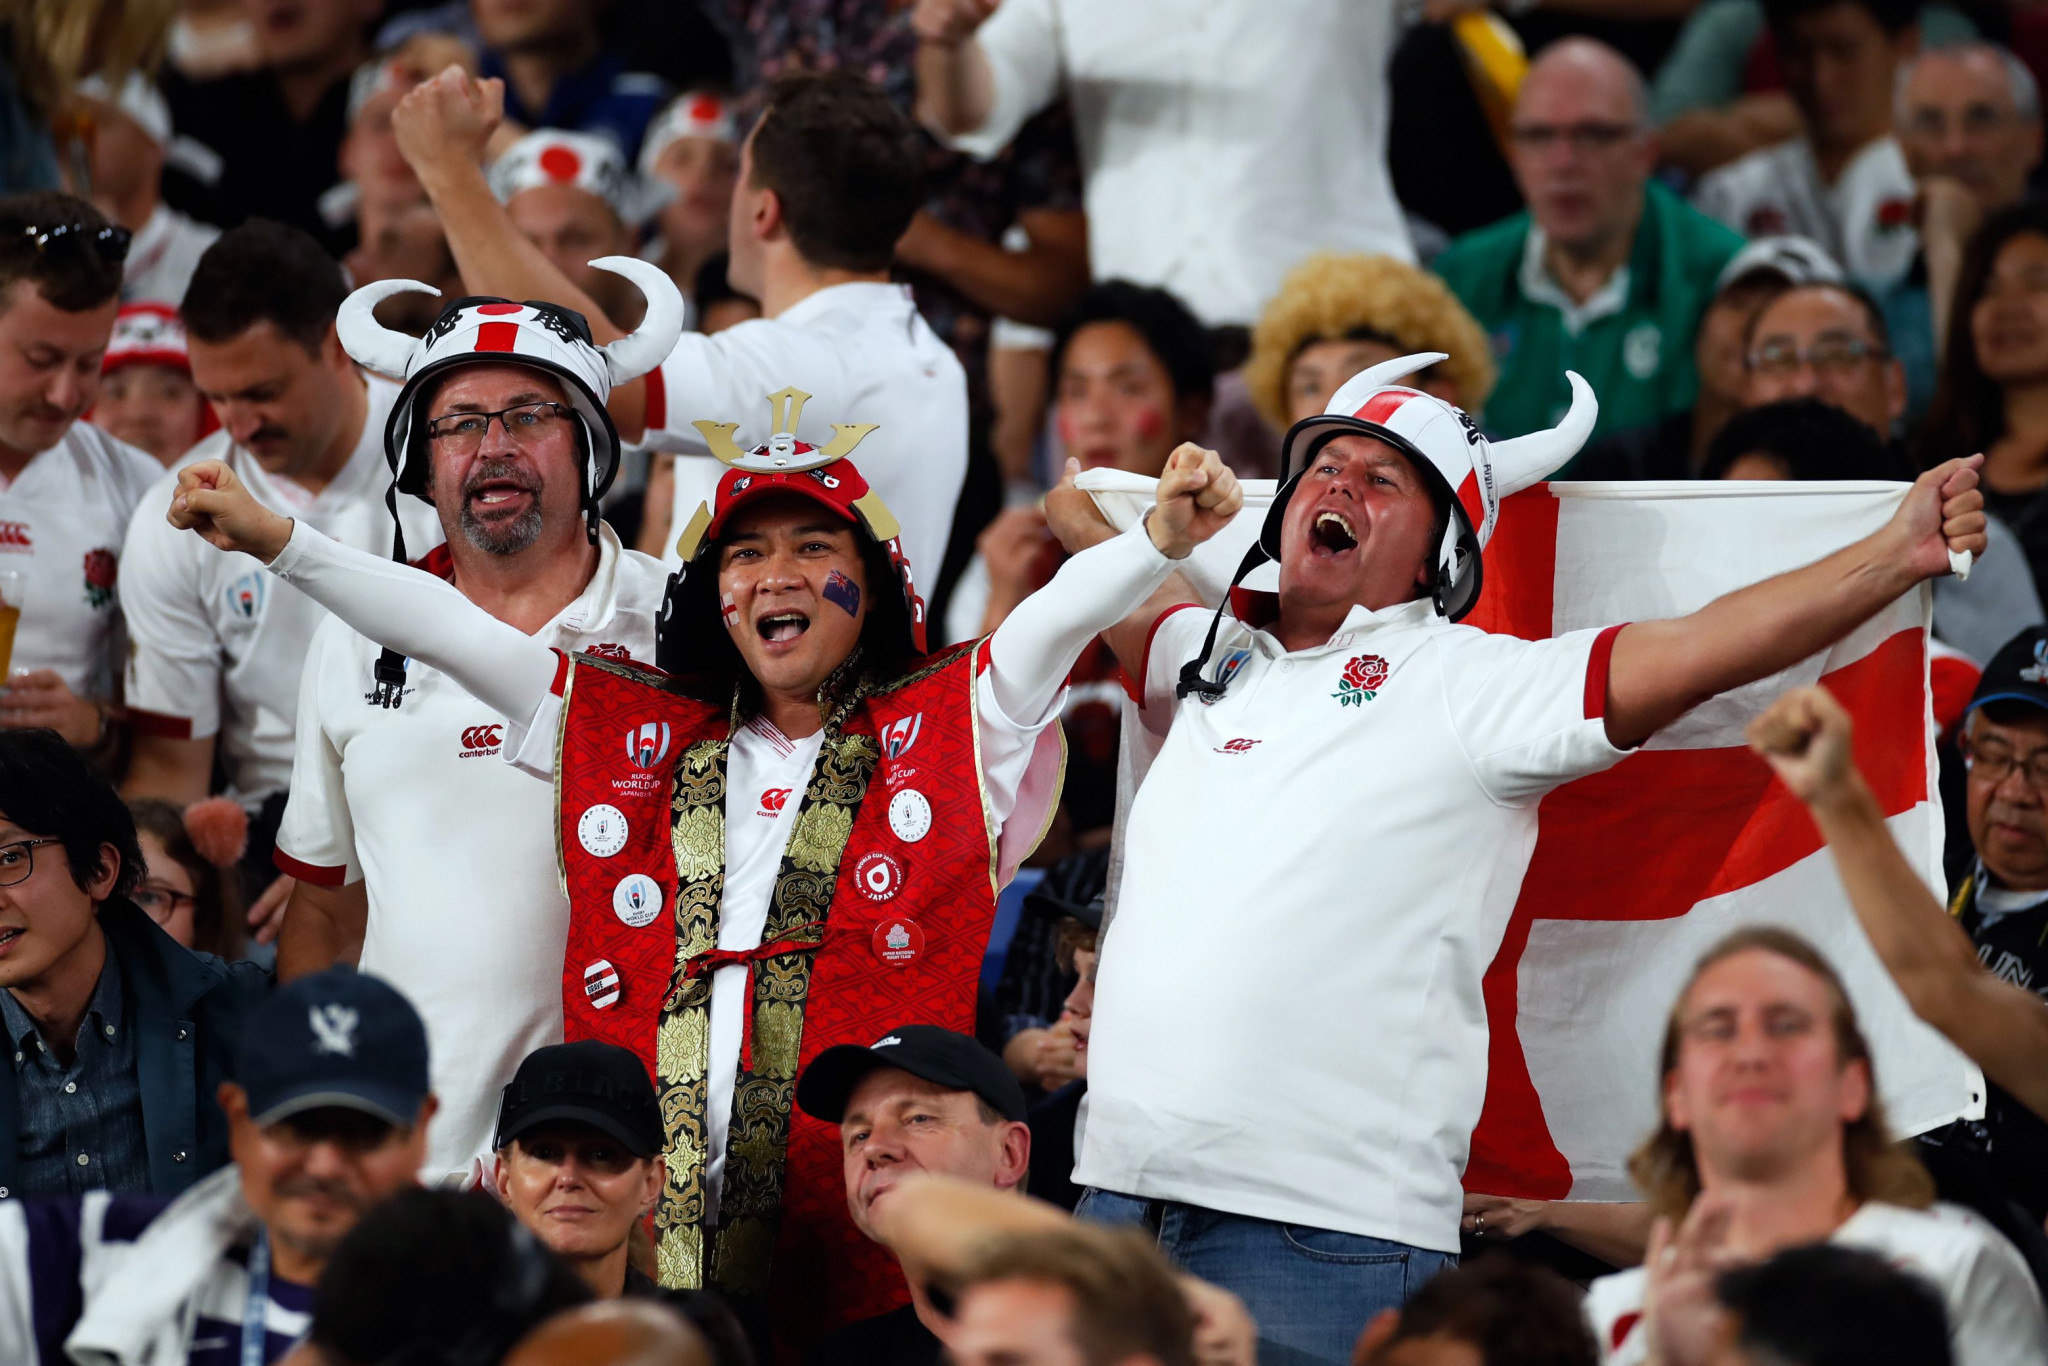 First packages available as organisers aim to sell 2.6 million tickets for 2023 Rugby World Cup